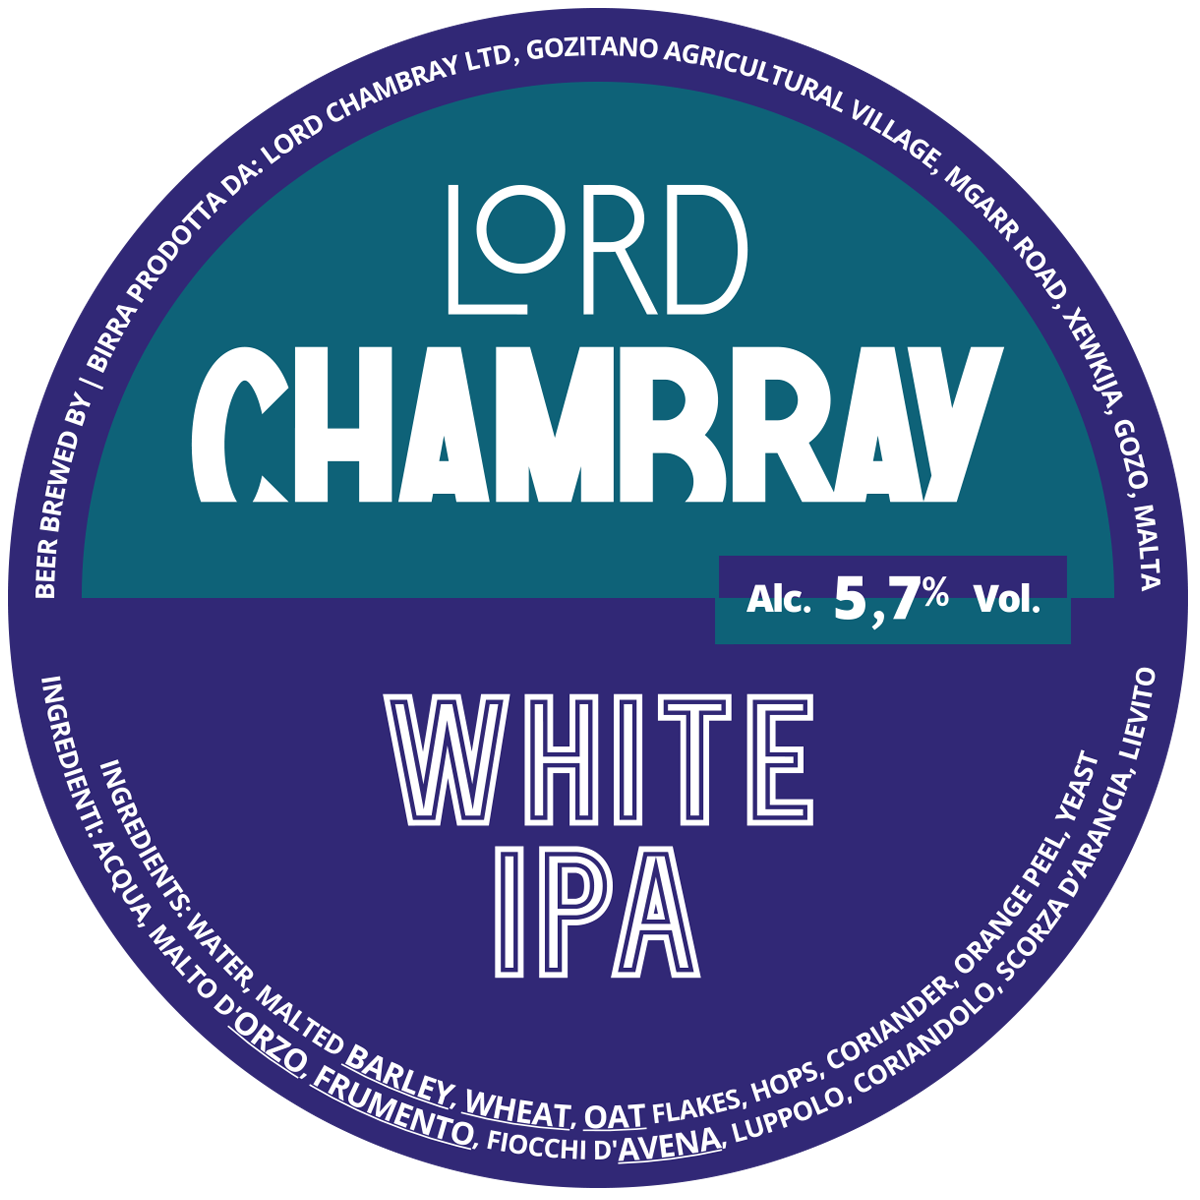 Lord Chambray – Craft Beer from Malta WHITE IPA